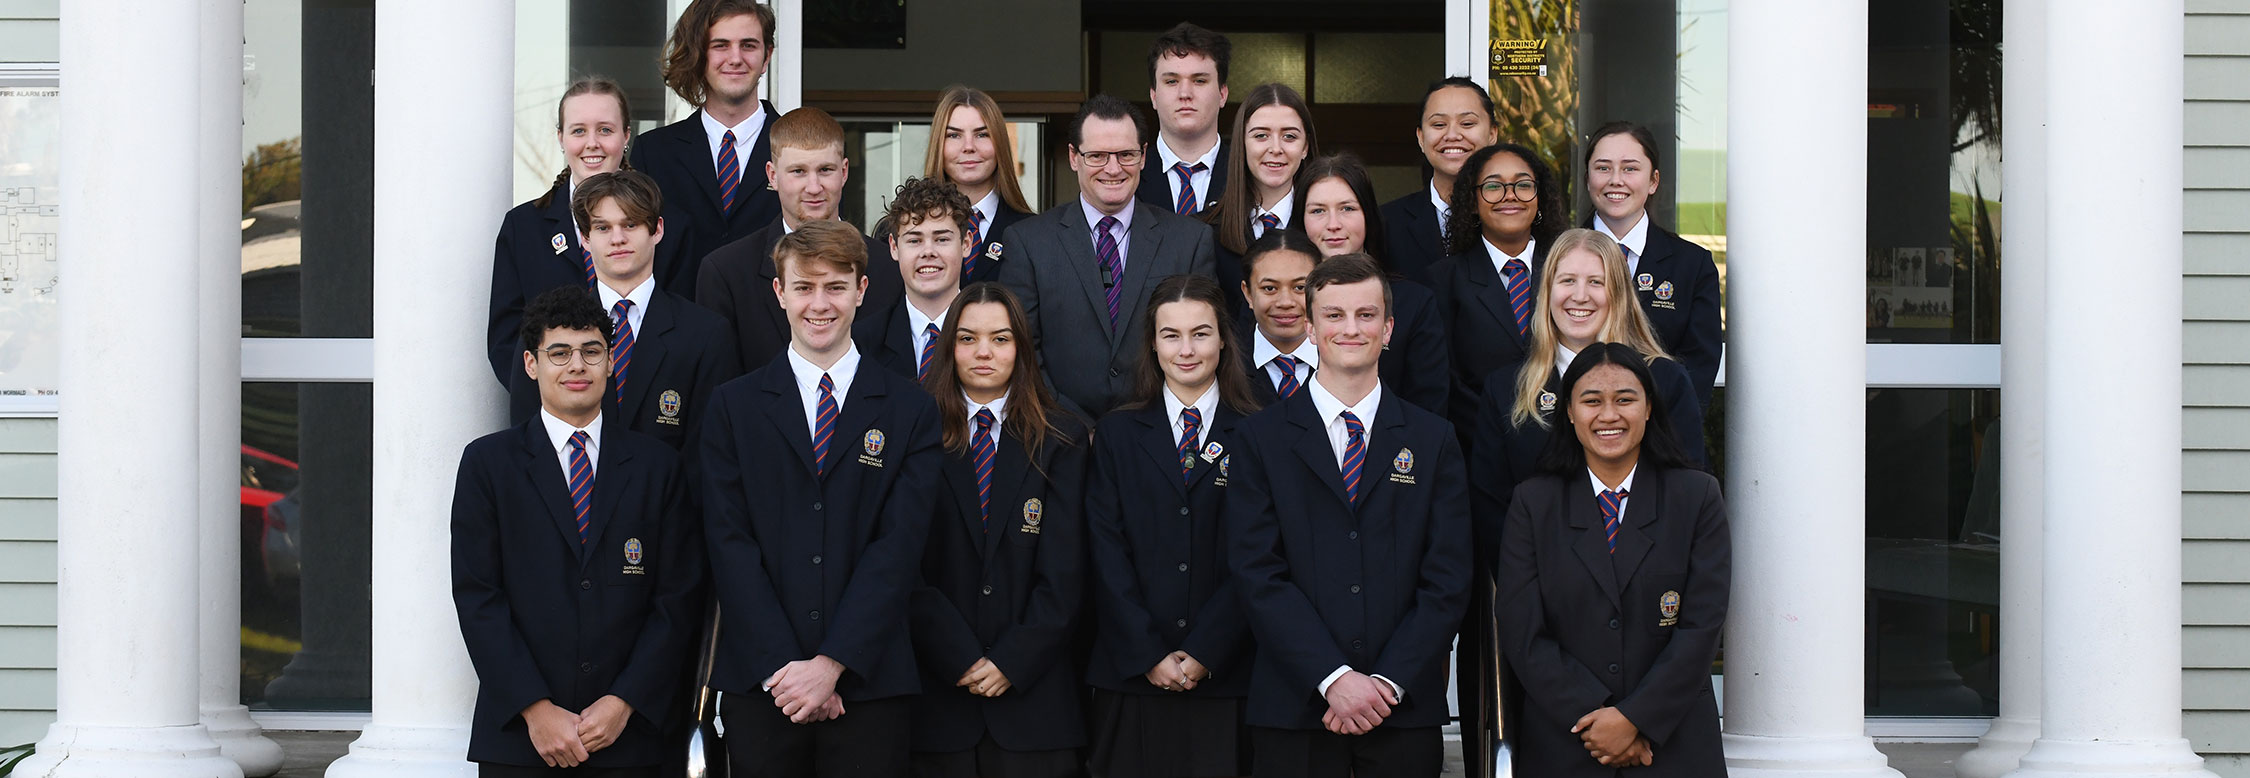 Dargaville High School Dargaville New Zealand